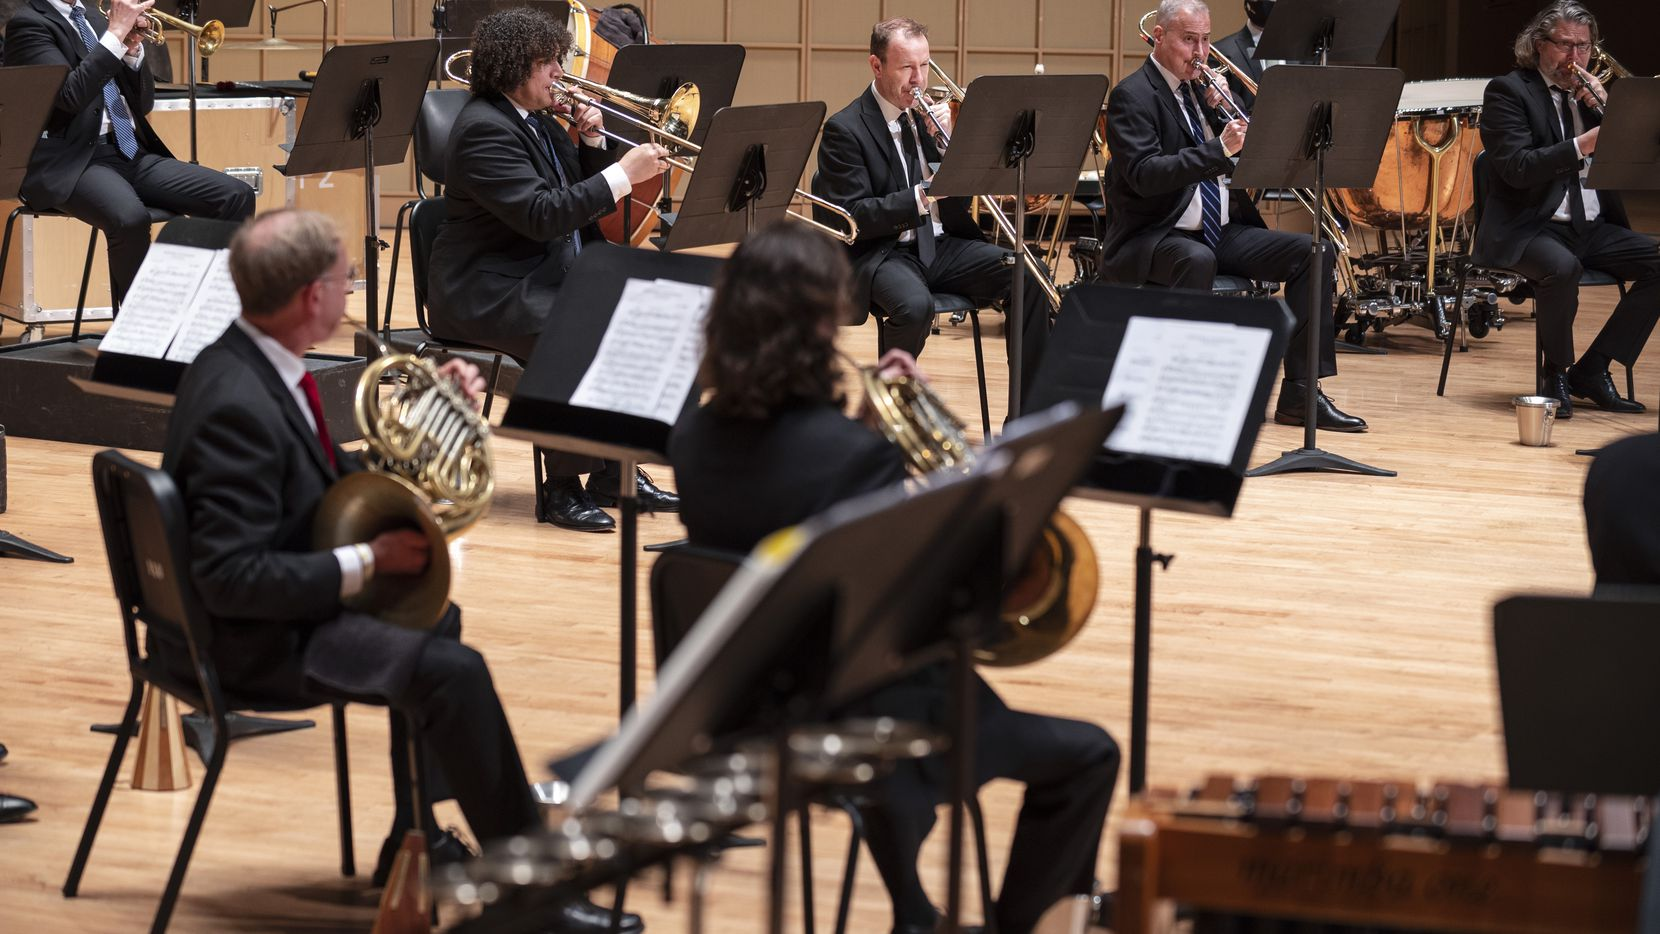 Members of the Dallas Symphony Orchestra and Metropolitan Opera Orchestra perform at the Morton H. Meyerson Symphony Center in Dallas, on May 3. This concert benefitted the MET Orchestra Musicians Fund and the Dallas-Fort Worth Musicians COVID-19 Relief Fund.